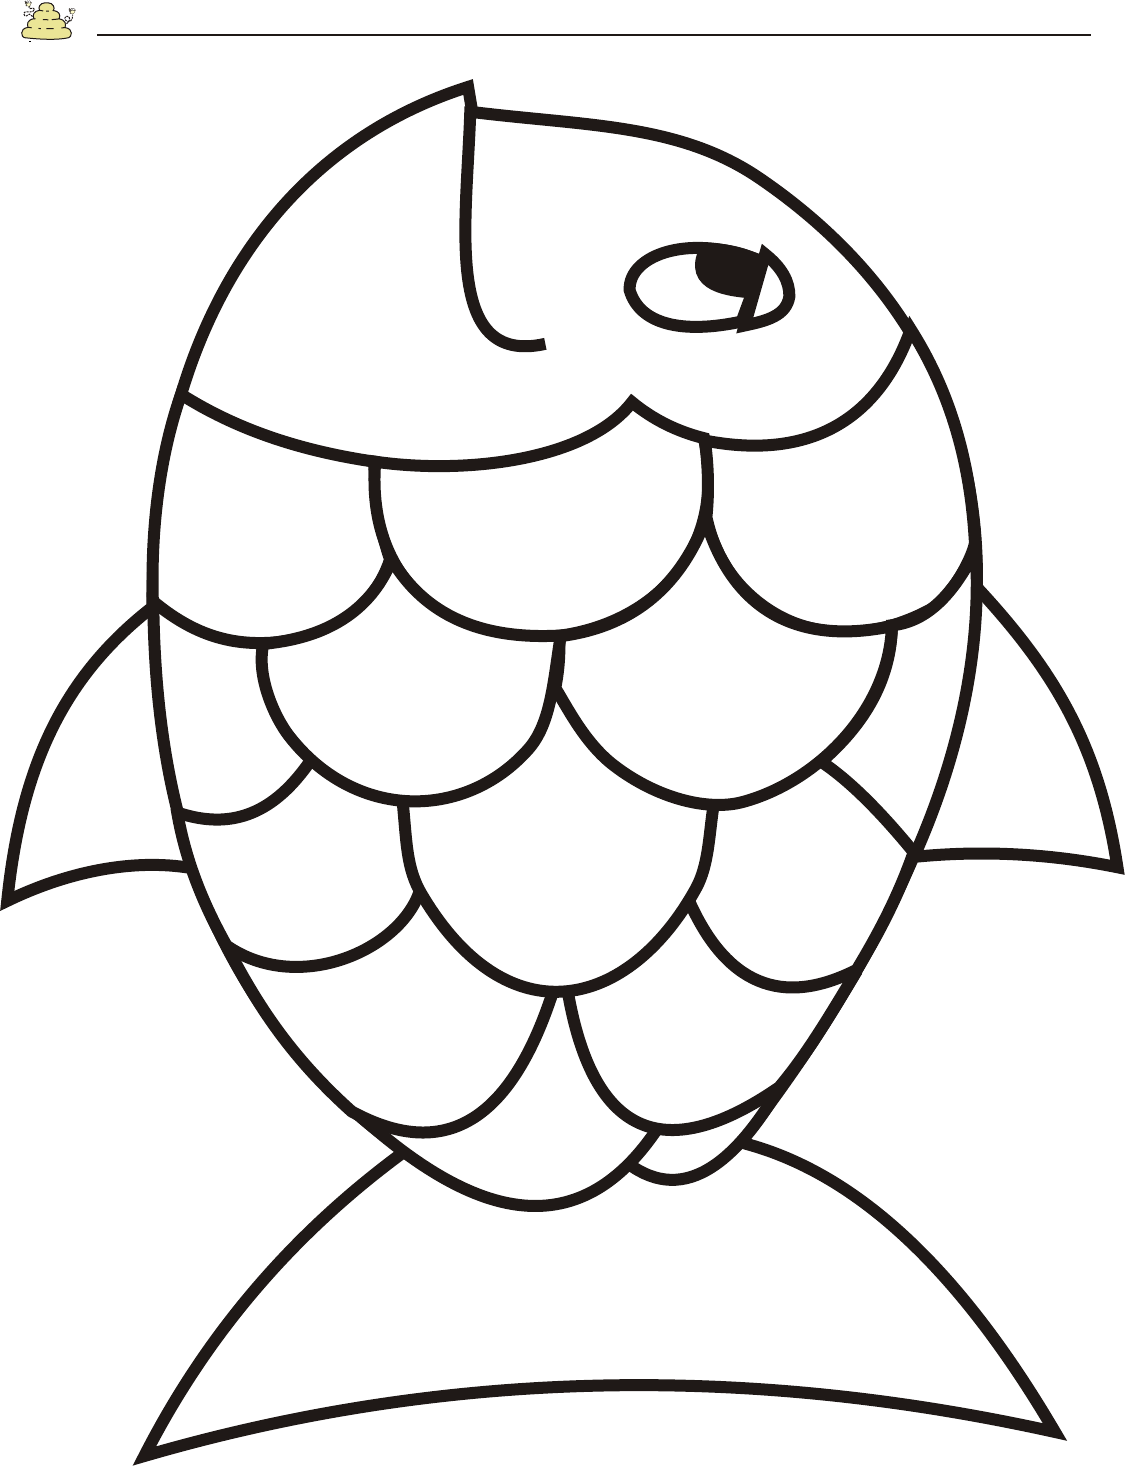 Printable coloring pages rainbow fish - Free Rainbow Fish Template Pdf 2 Page S Page 2